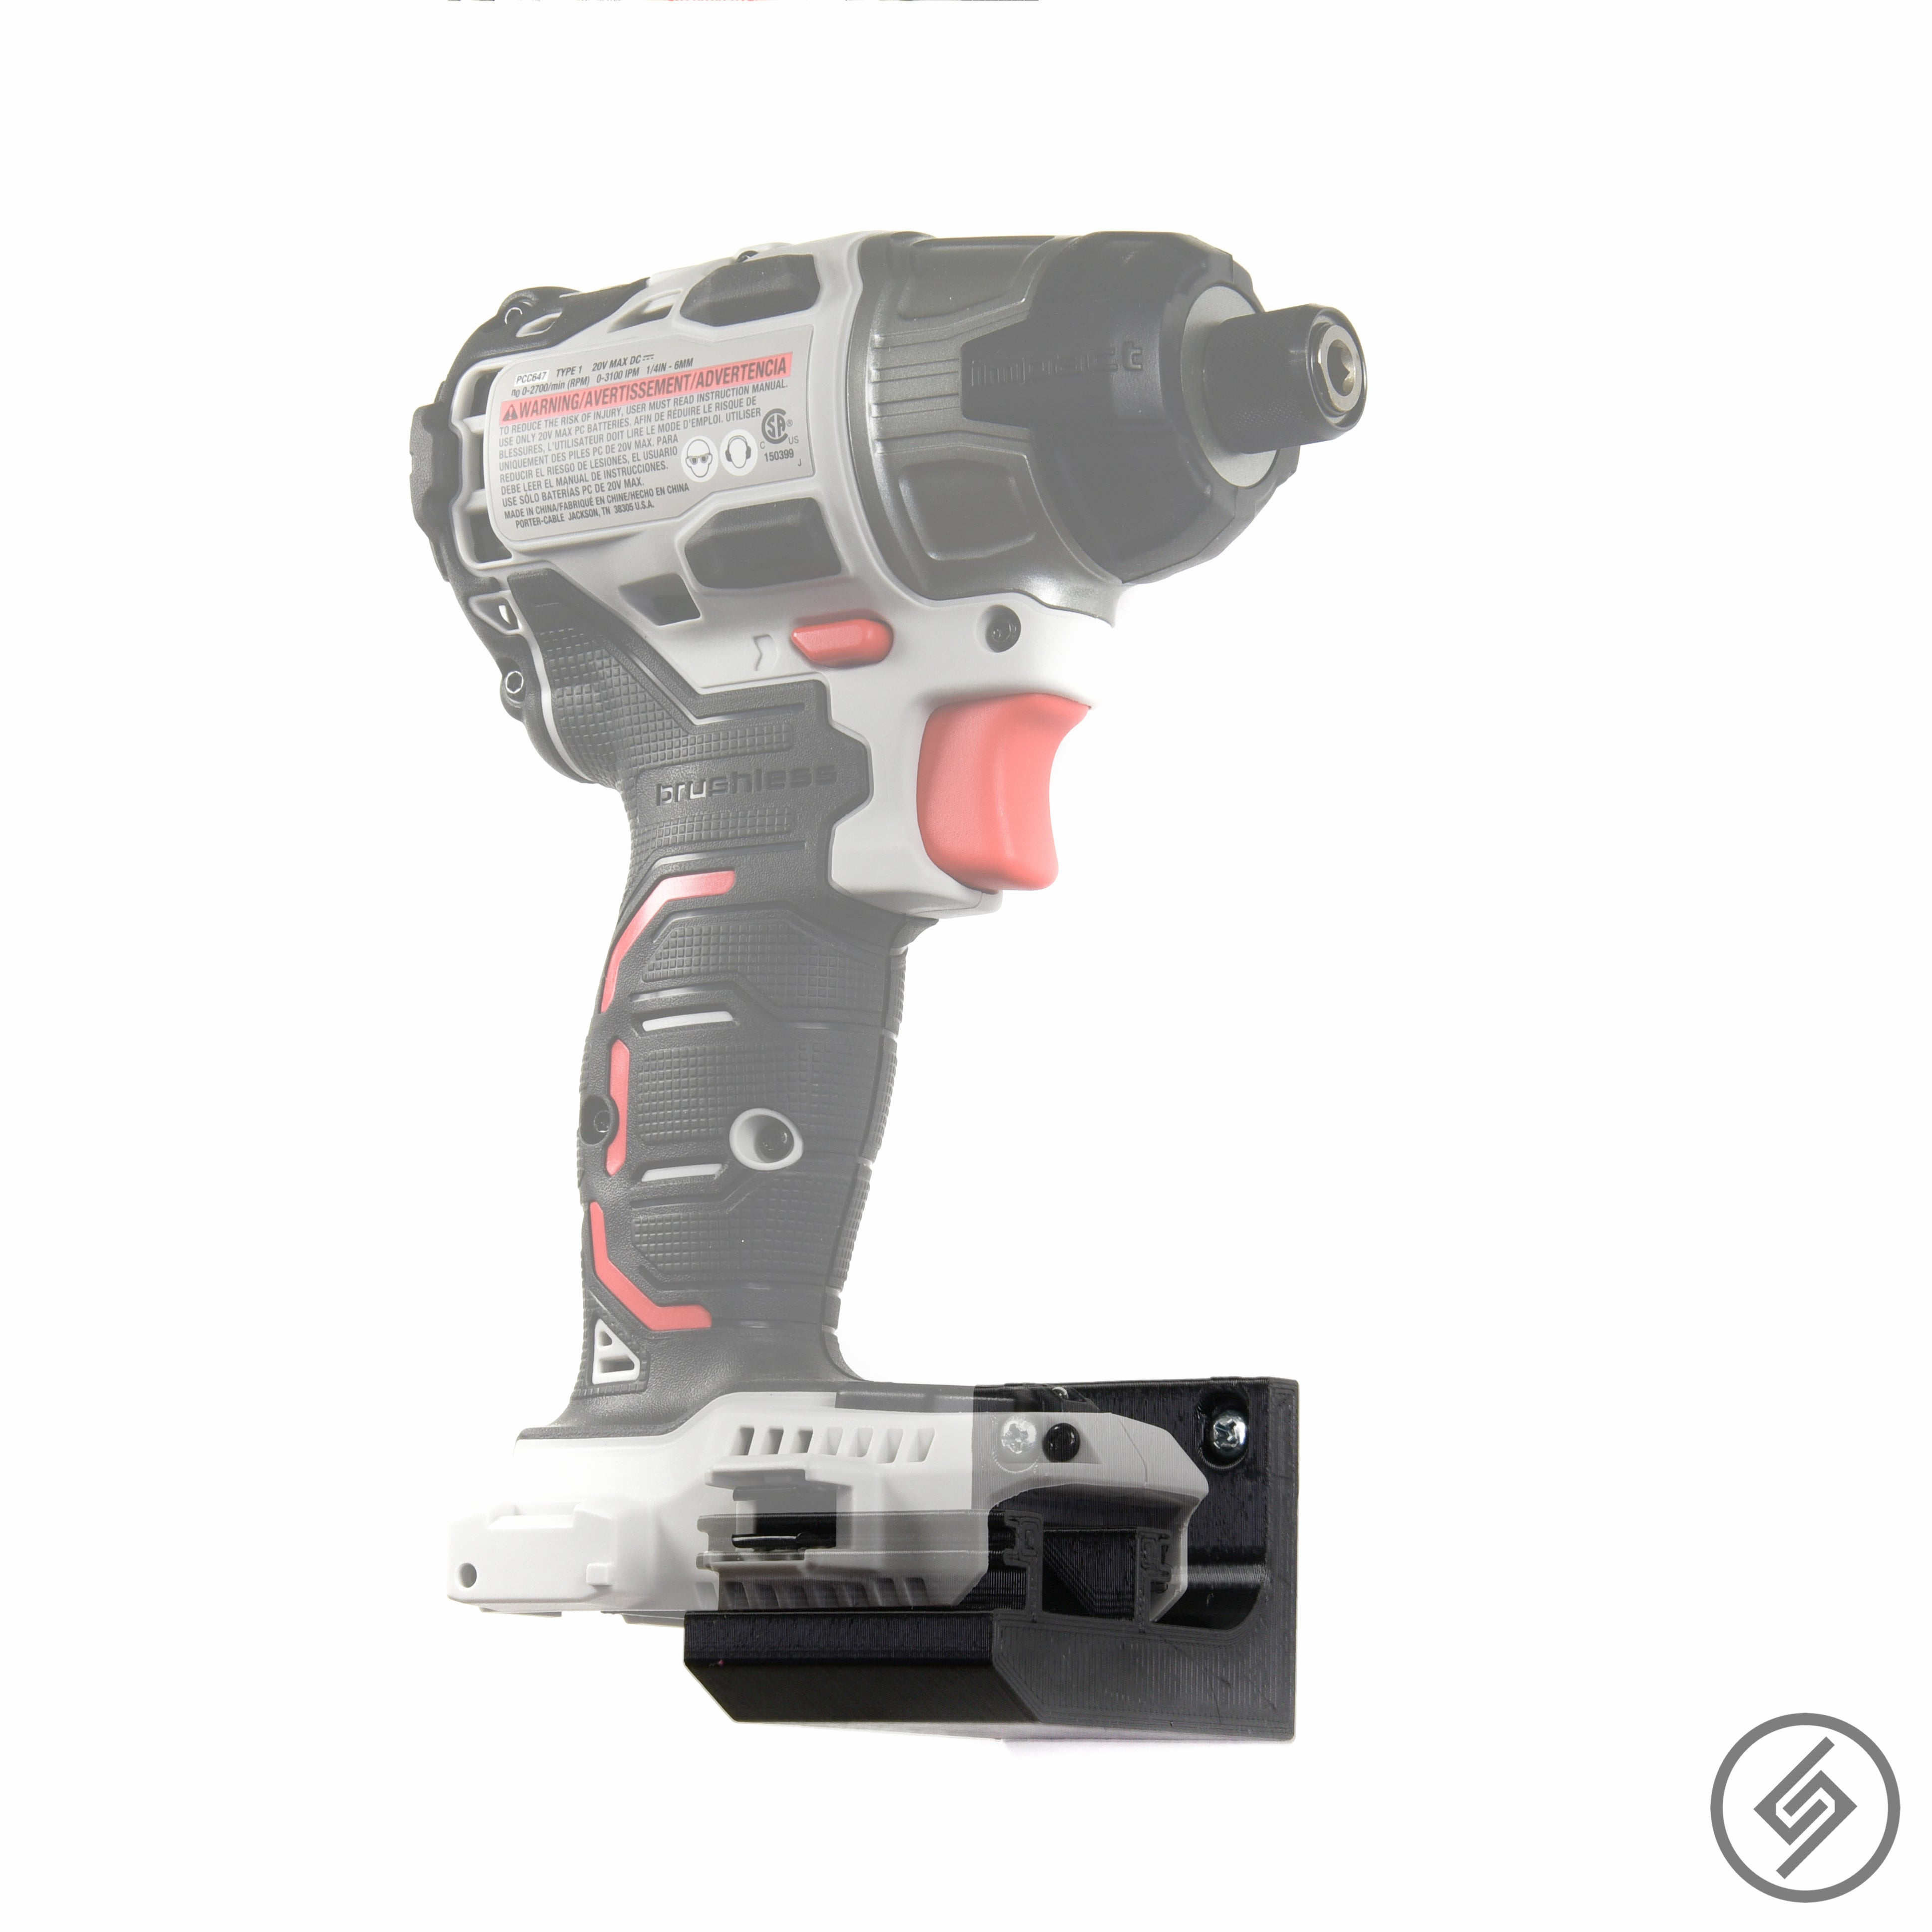 Wall Mount for all sizes of the PORTER CABLE 20V Power Tools, Right, Transparent, Spartan Mounts